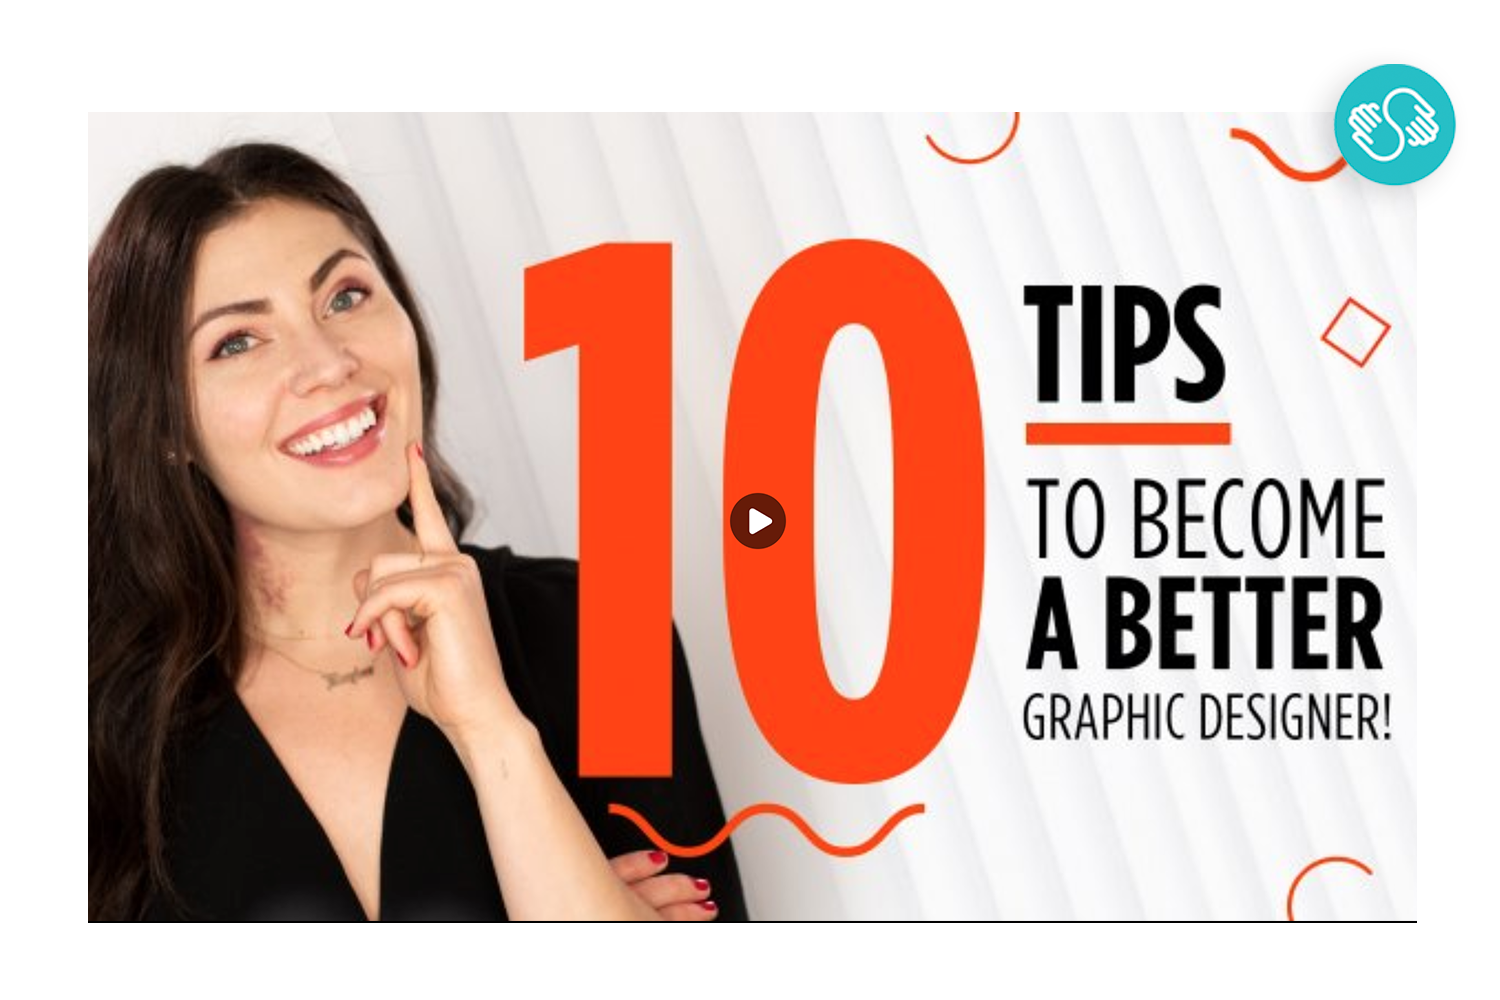 Haylee Jordan - 10 tips to becoming a better graphic designer